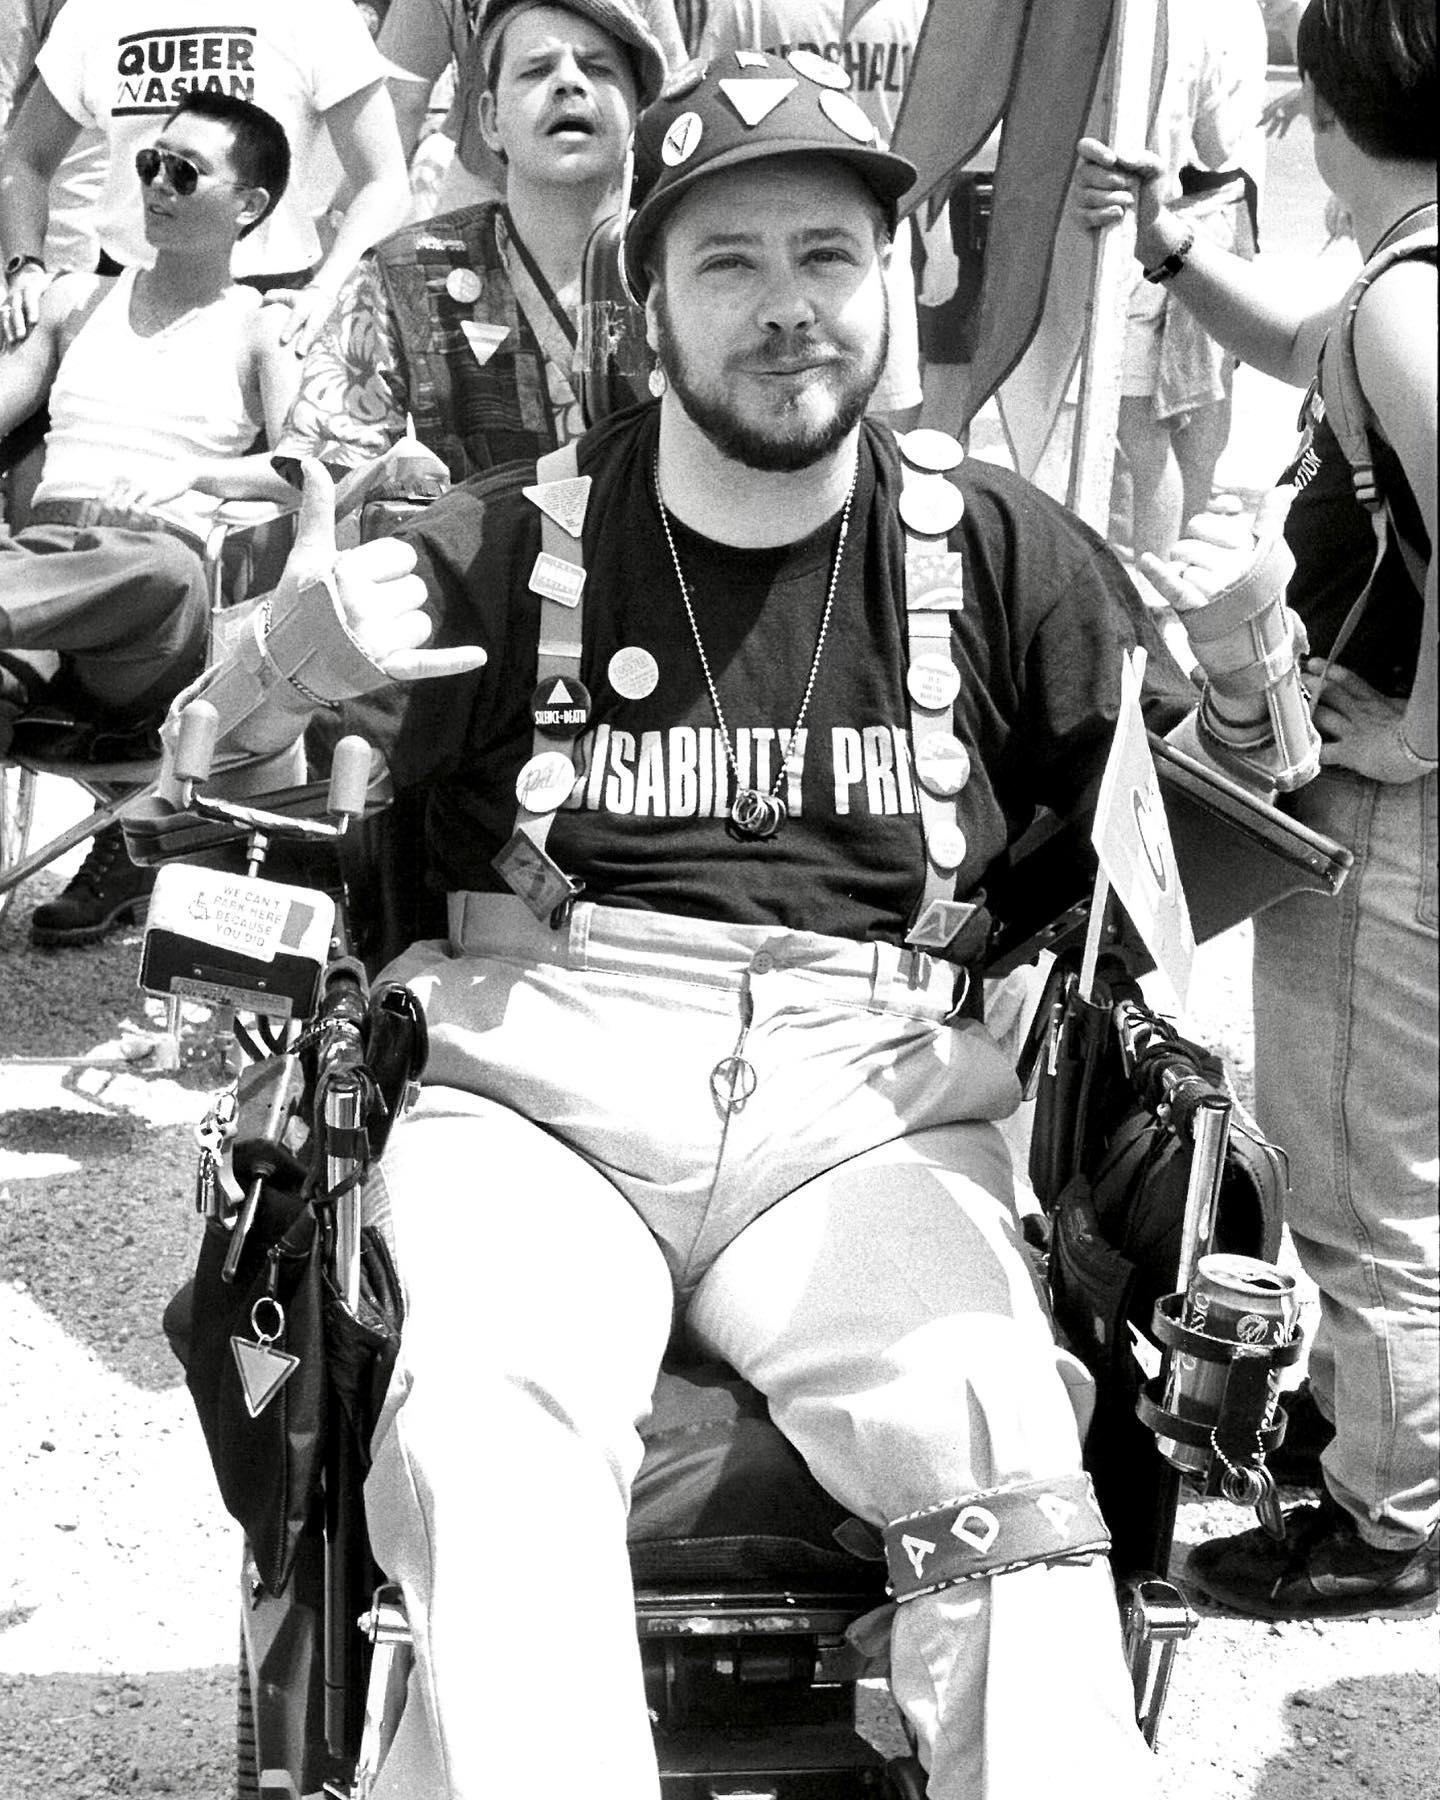 #OnThisDay in 2020, Erik von Schmetterling of @realnatlADAPT (Americans Disabled for Accessible Public Transportation), passed away at age 67. He is seen here at the 1993 March on Washington for Gay, Lesbian, and Bi Equal Rights and Liberation, in a shirt reading 'Disability Pride'.  Dr. Von Schmetterling was an out and proud disabled transman, born in Munich. The son of a Holocaust survivor who suffered severe PTSD, he was abandoned at age 3 and adopted by a family that then moved to the US. In a tribute written by his husband, Dr. von Schmetterling is described as turning to books and education as a refuge from trauma. He attended Queen's College in England on scholarship to study medicine, and after graduation, began a residency at Cleveland Metro Hospital.  However, his residency was cut short by a pulmonary embolism that caused him to start losing feeling in his limbs. He became unable to practice medicine and spent time in a home for the disabled and elderly - but after witnessing the mistreatment of folks in that home, felt called to Disability Rights. Erik moved into a wheelchair accessible apartment and started volunteering; he was the 1992-1994 President of Disabled In Action, and worked with ADAPT from 1988 to the time of his passing. He was a deeply compassionate person who believed that people with disabilities had the right to full inclusion and access to life.  Erik married James V. Shrode in a religious ceremony during an ADAPT protest. The two considered their participation in the March on Washington to be a particularly proud moment. They arranged accessibility and resources for disabled LGBTQ folks to attend, providing supportive community for attendees who, like Erik, faced the multiple hurdles of being gay, trans, and disabled. Erik and Jimmi helped make it possible for them to gather and visibly advocate for themselves as part of the larger LGBTQ community.    In honor of Erik and his belief in the power of education, Disability Pride PA  has f